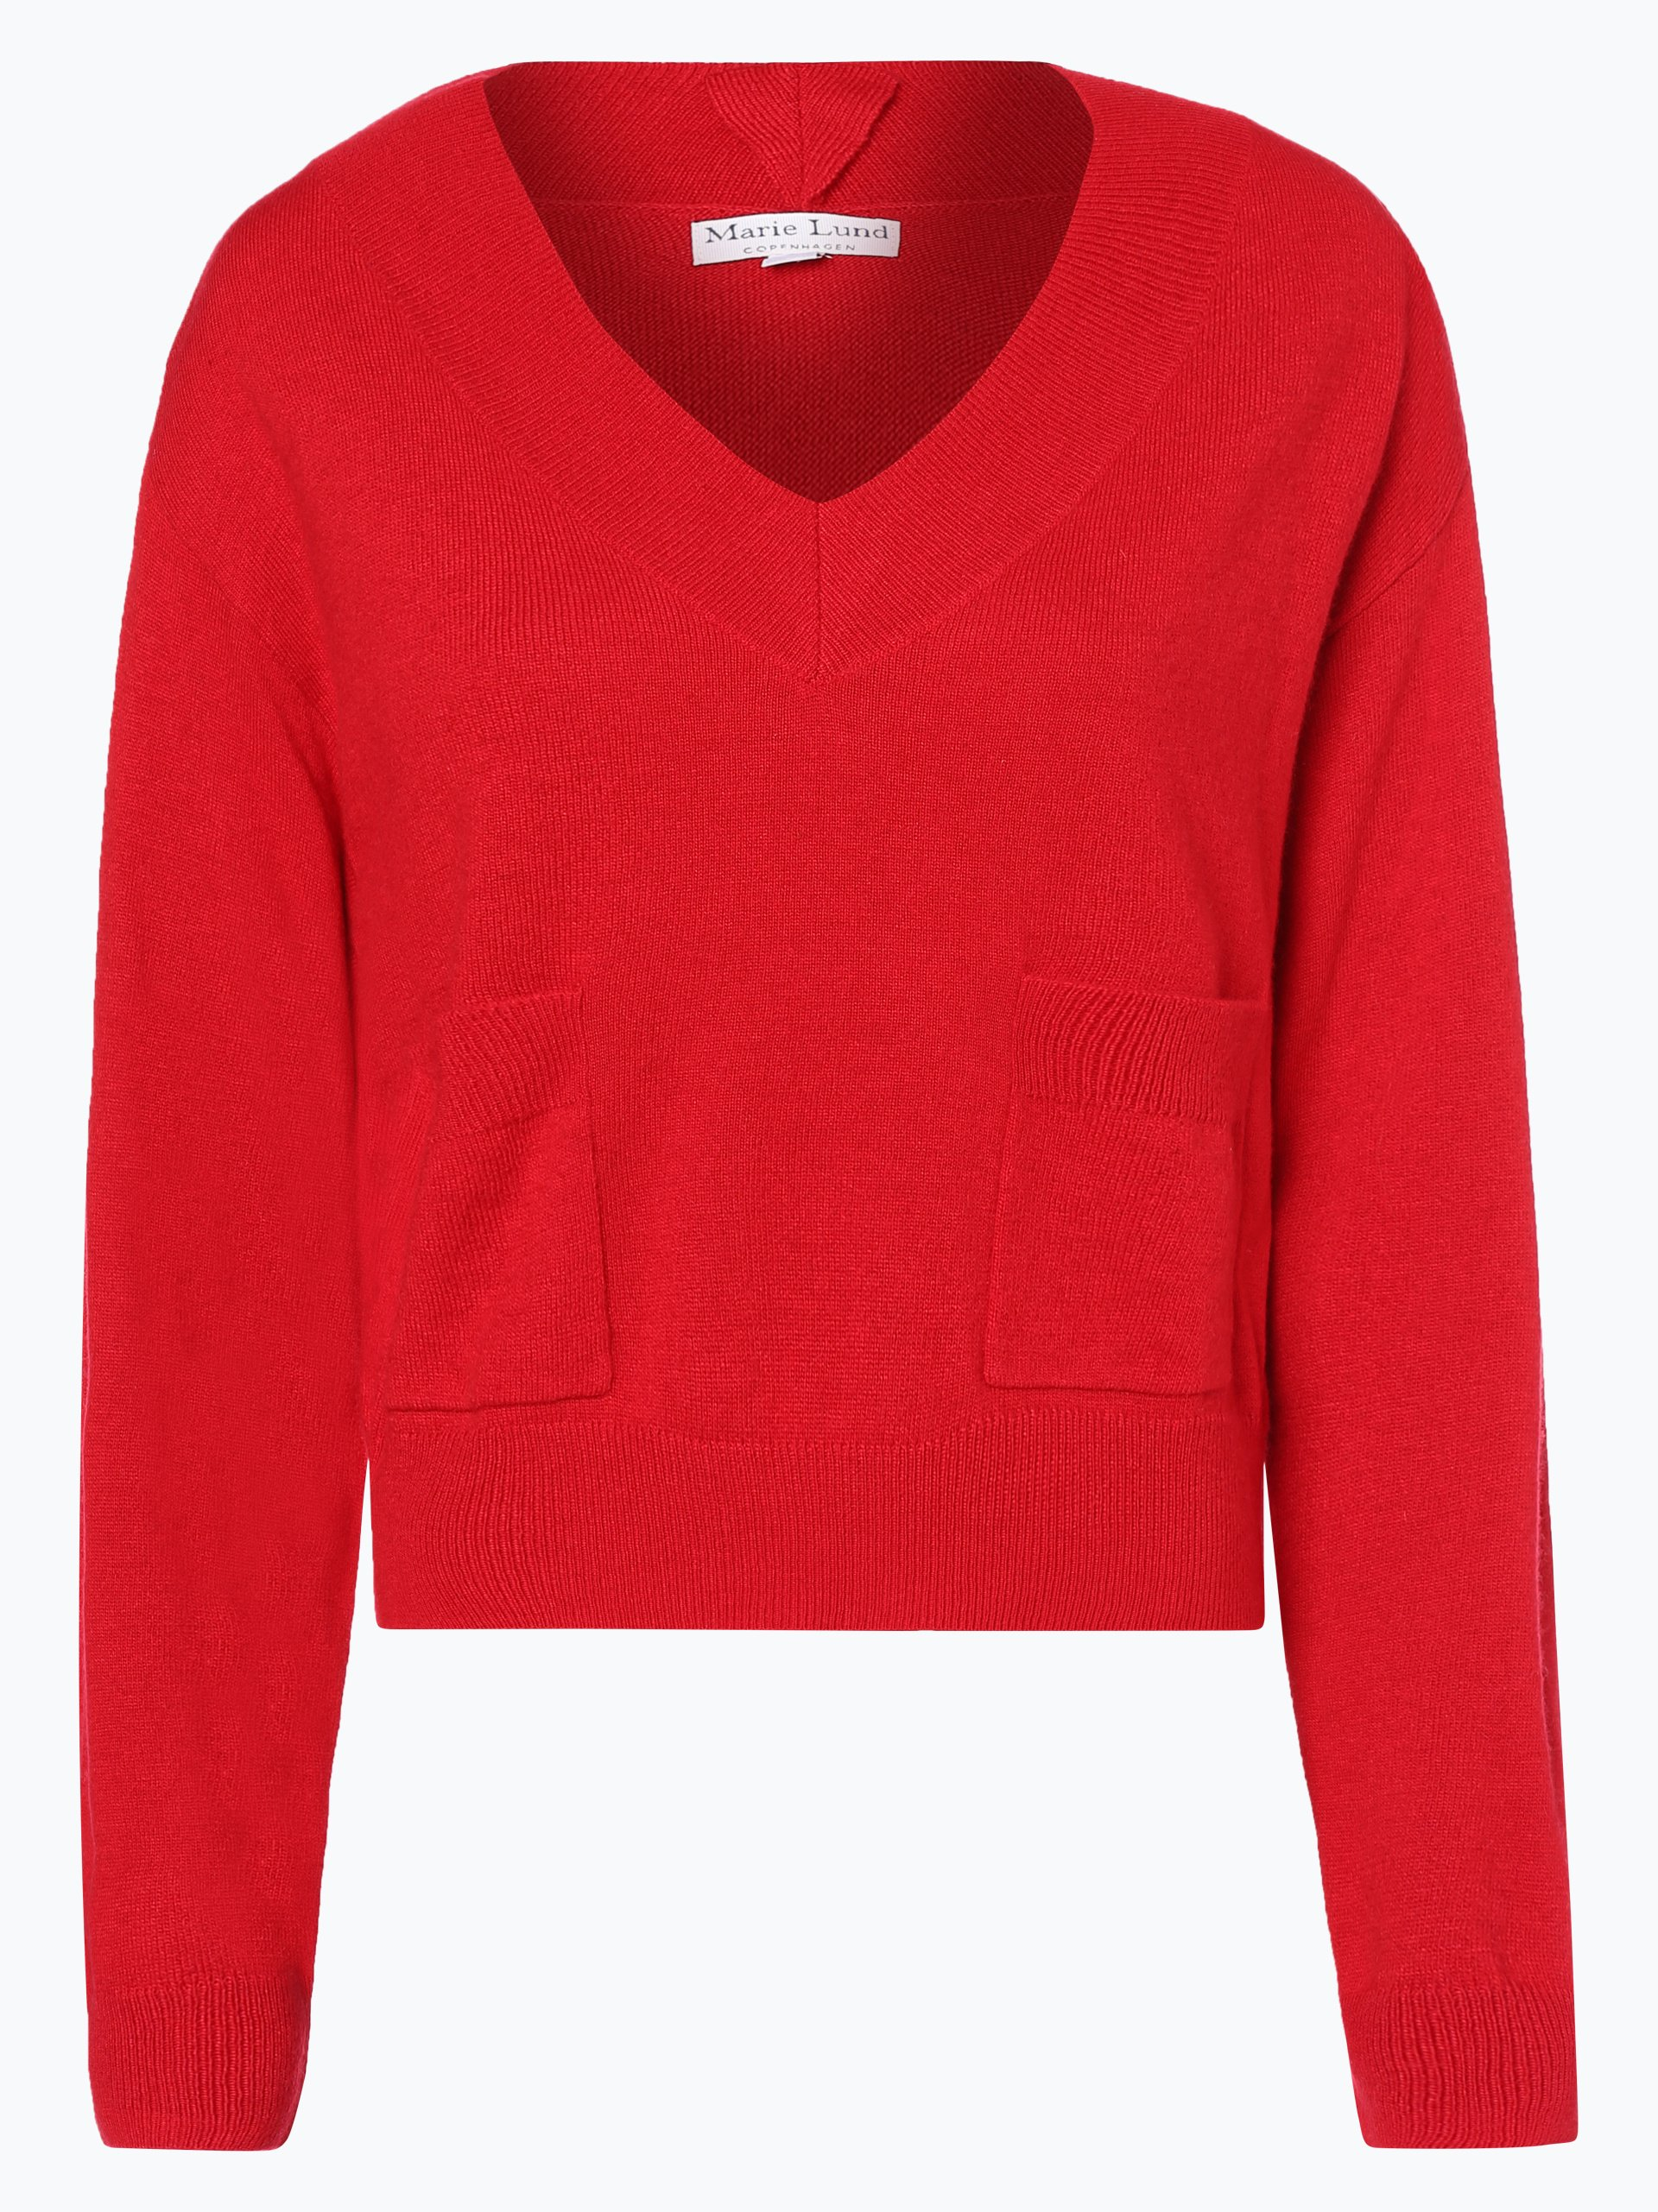 marie lund damen pullover mit cashmere anteil rot uni online kaufen vangraaf com. Black Bedroom Furniture Sets. Home Design Ideas